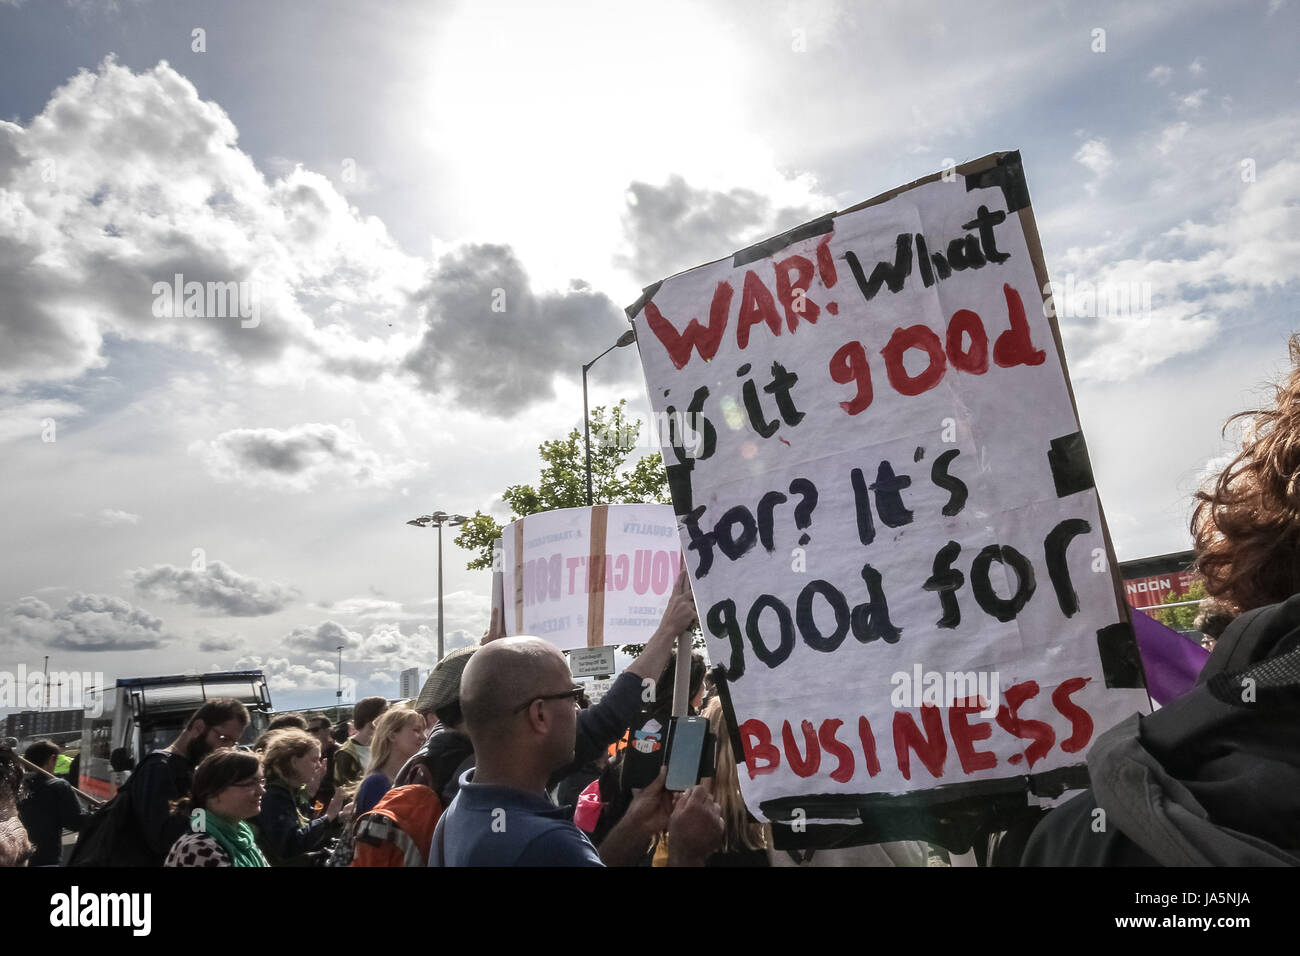 Stop the Arms Fair. Anti-war protest outside Excel Centre in east London, UK. Stock Photo